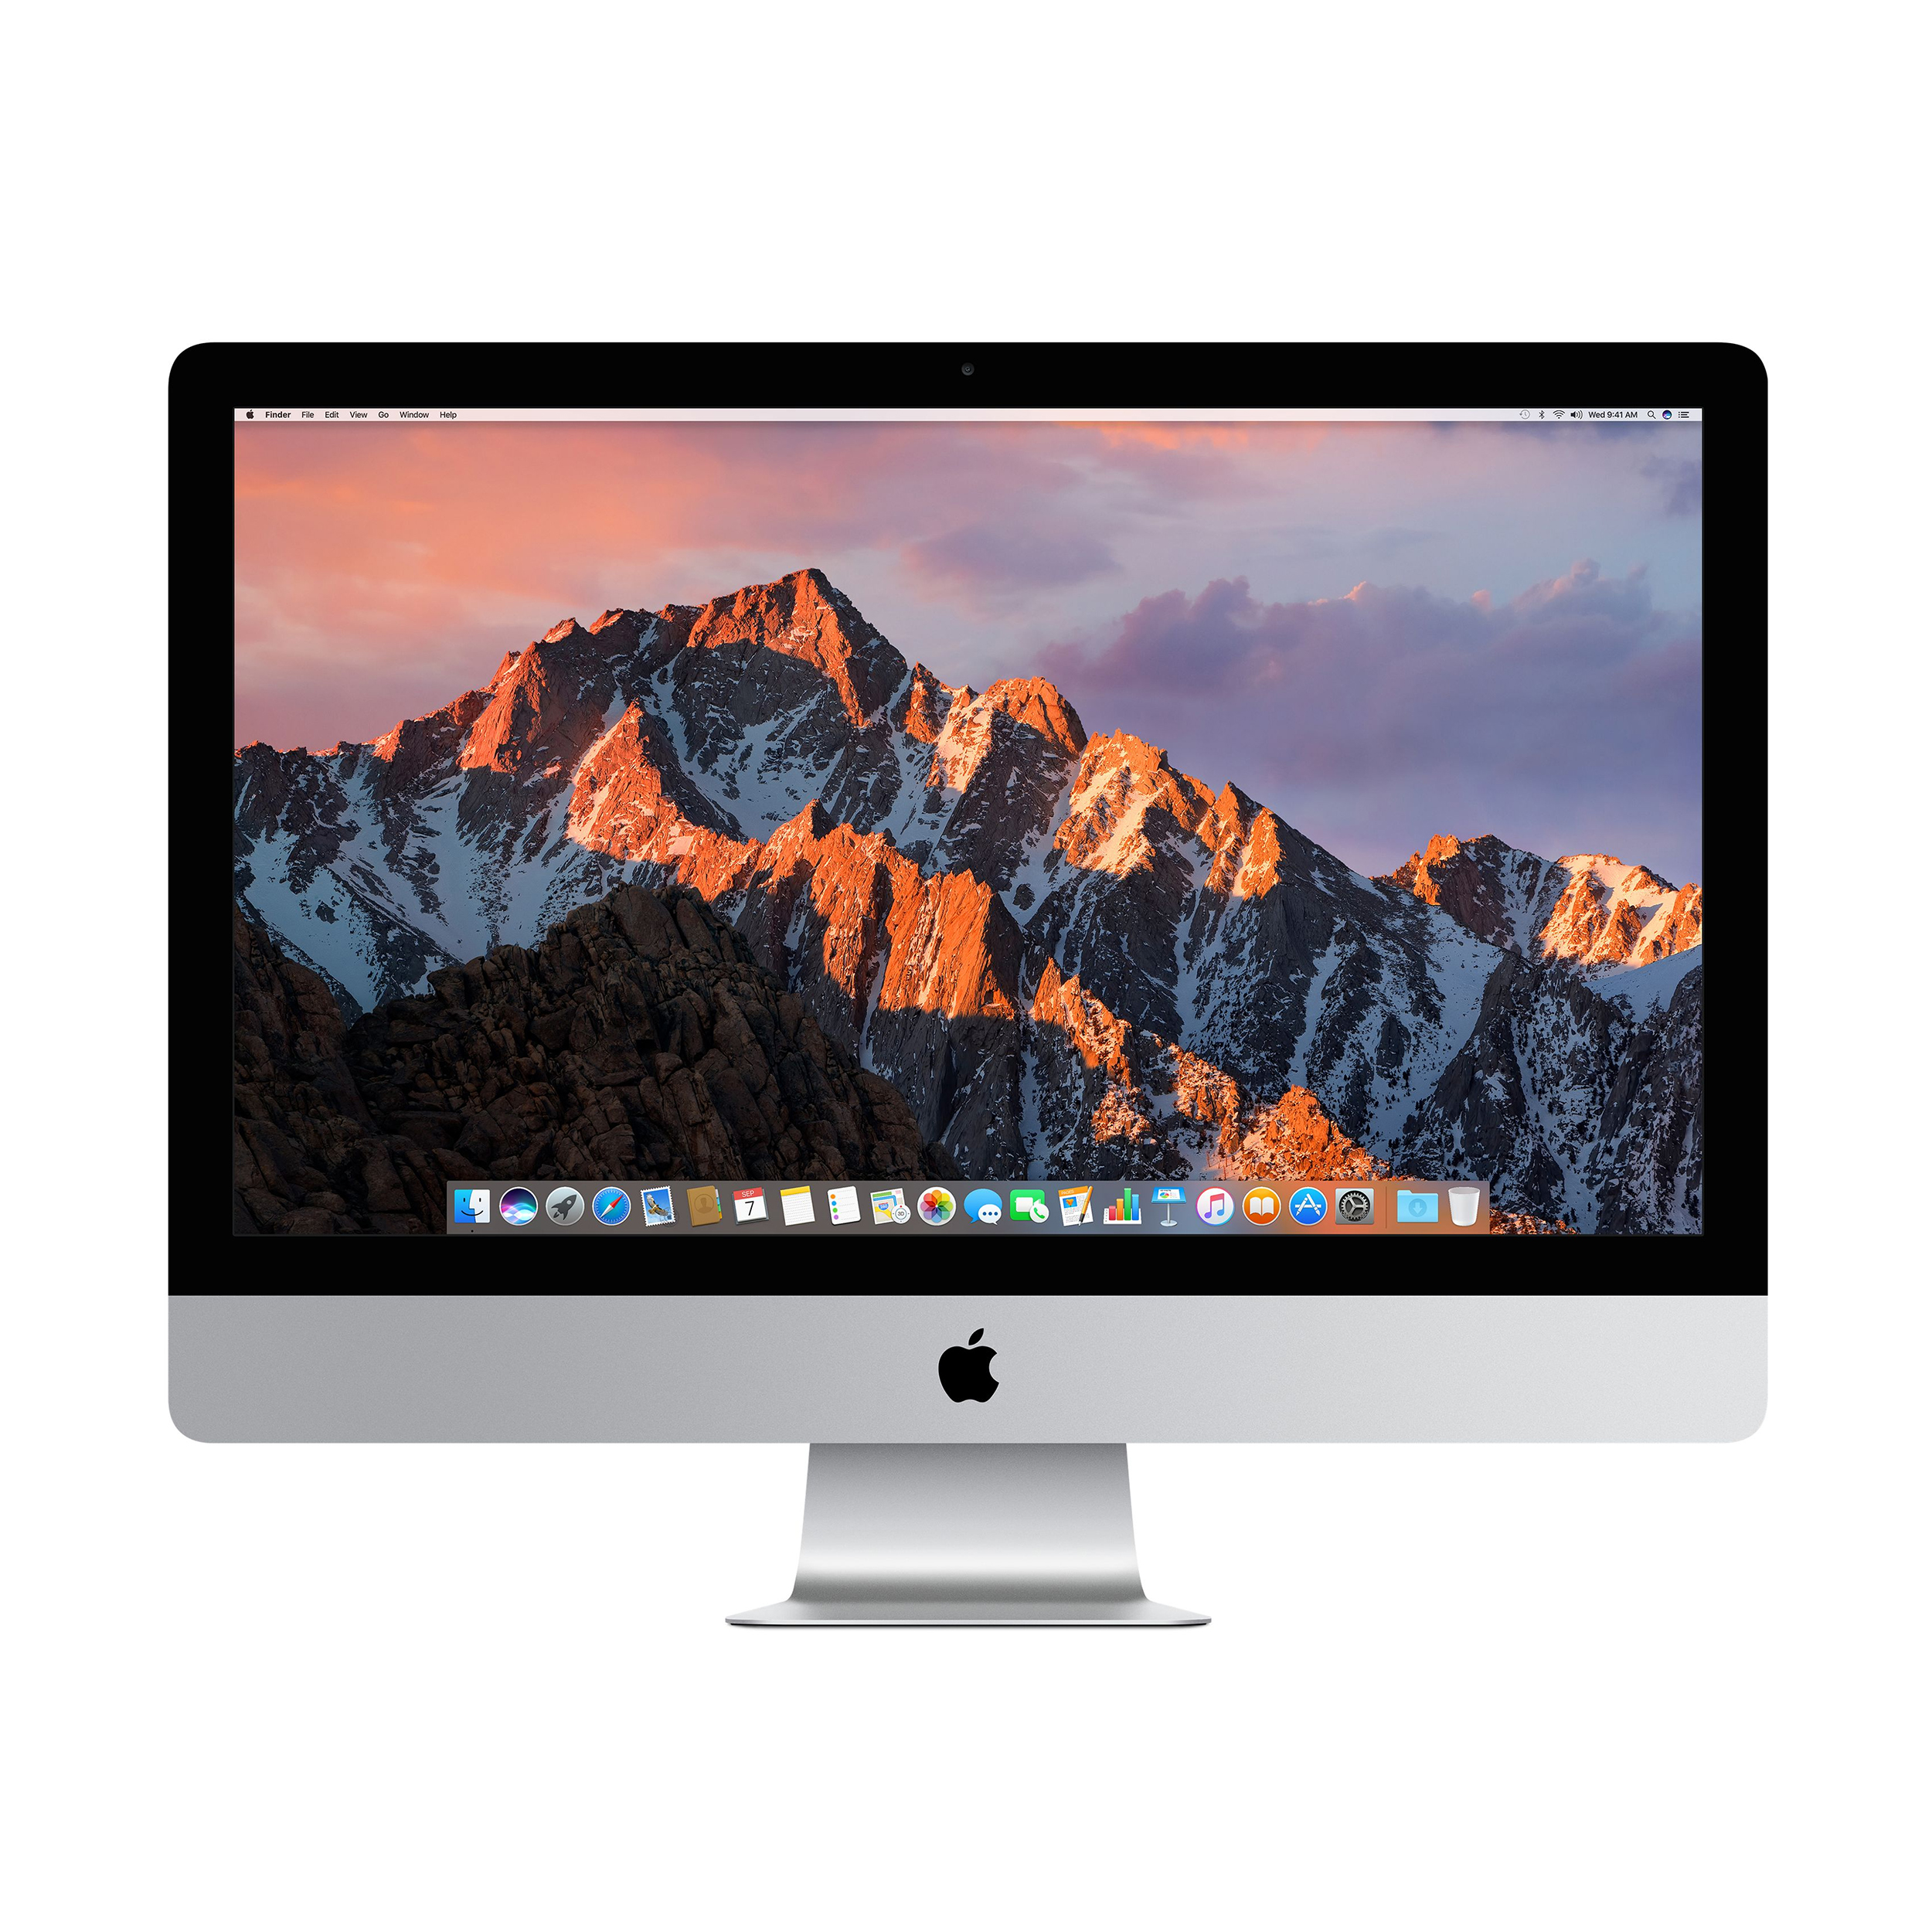 Desktops Apple iMac 21.5inch 8th Generation MacOS 4K Display i5 Processor 8GB Ref MRT42B/A